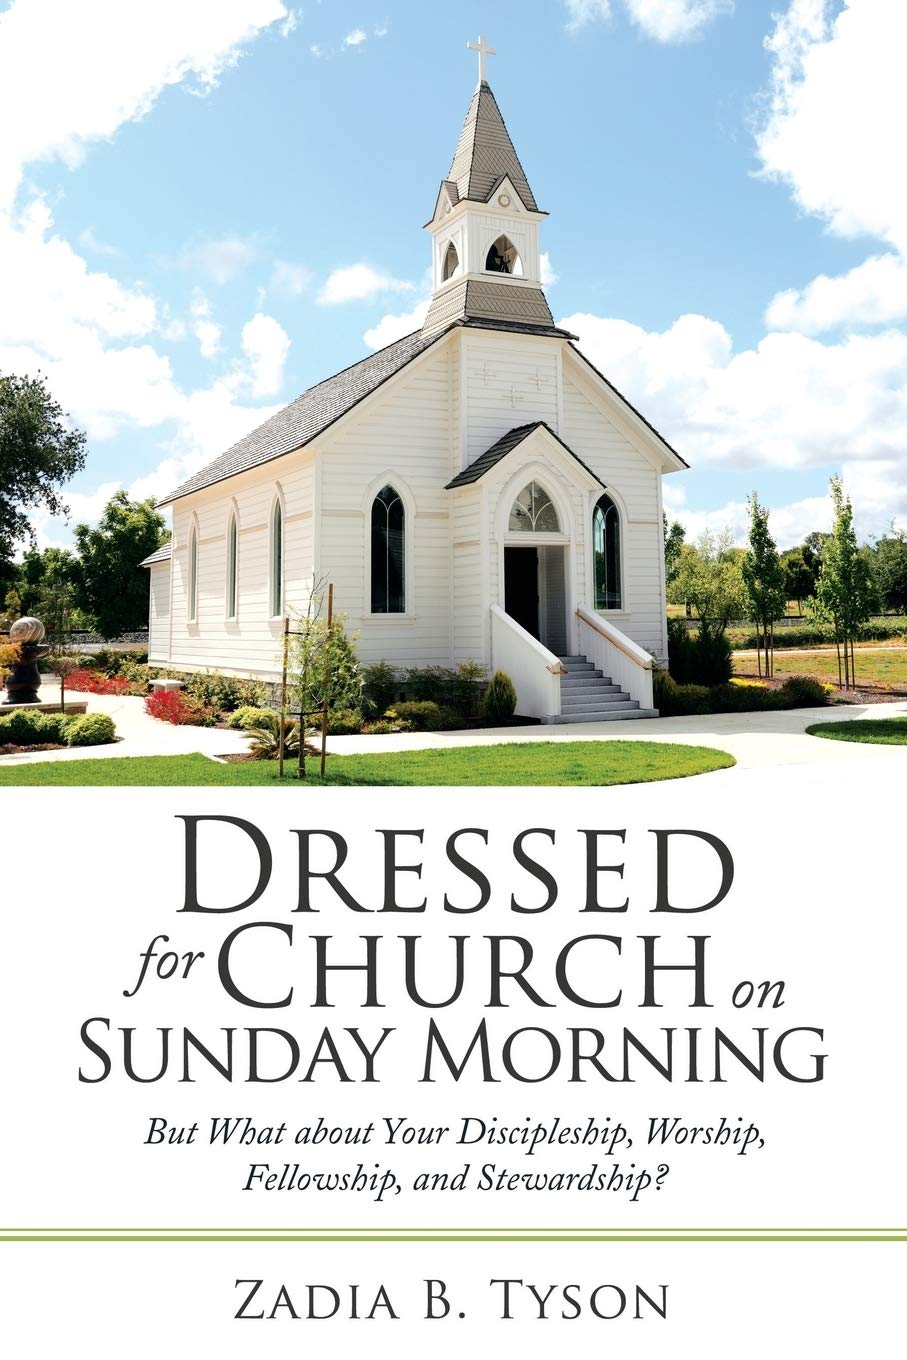 Dressed for Church on Sunday Morning by Author Zadia B. Tyson